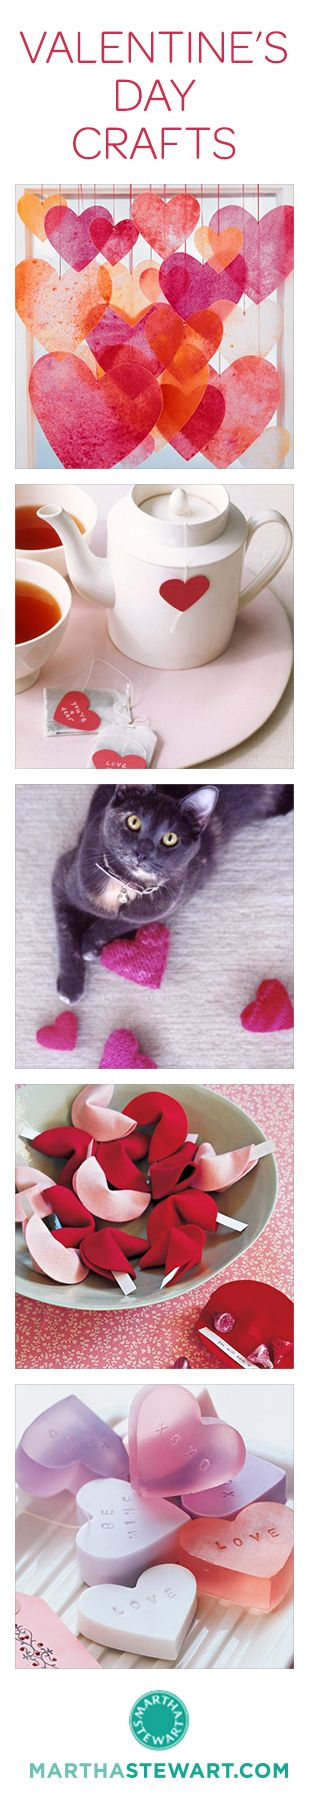 Martha Stewart Valentines crafts!